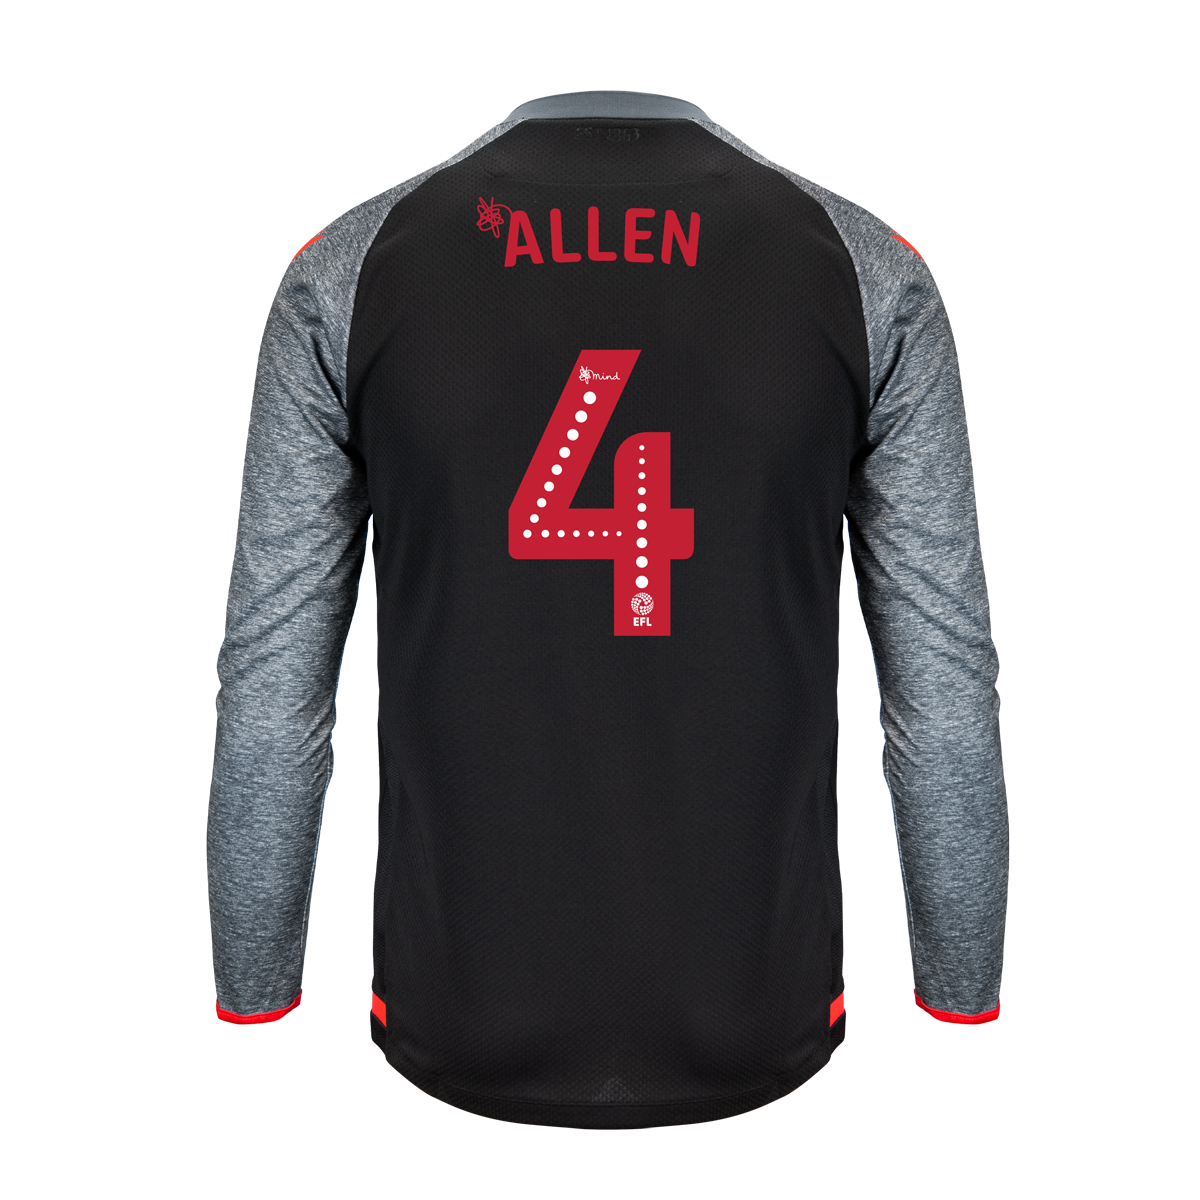 2019/20 Adult Away LS Shirt - Allen